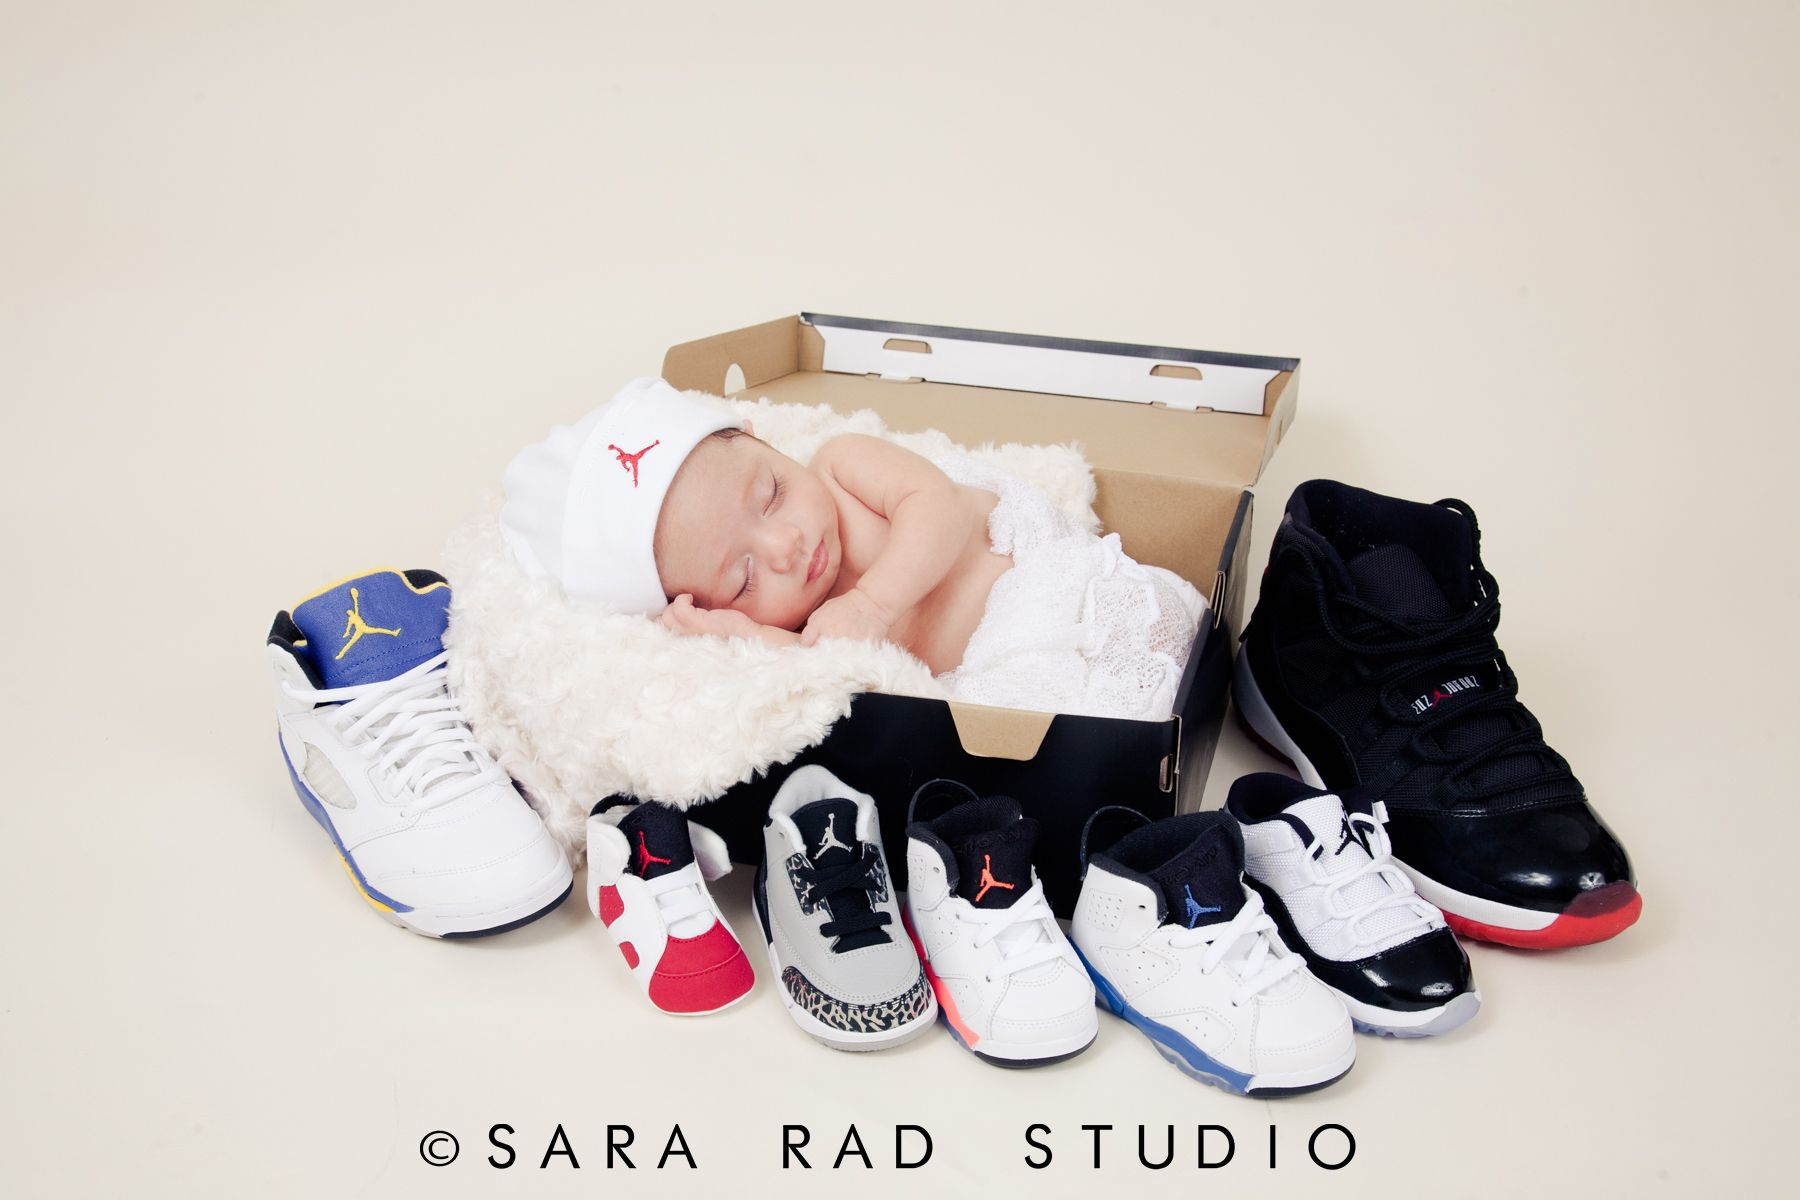 brand new 8241e 20bc3 newborn, baby boy, future basketball player, heart breaker, newborn  photography, baby in a box, air jordan, shoes, sneakers ©  www.sararadstudio.com